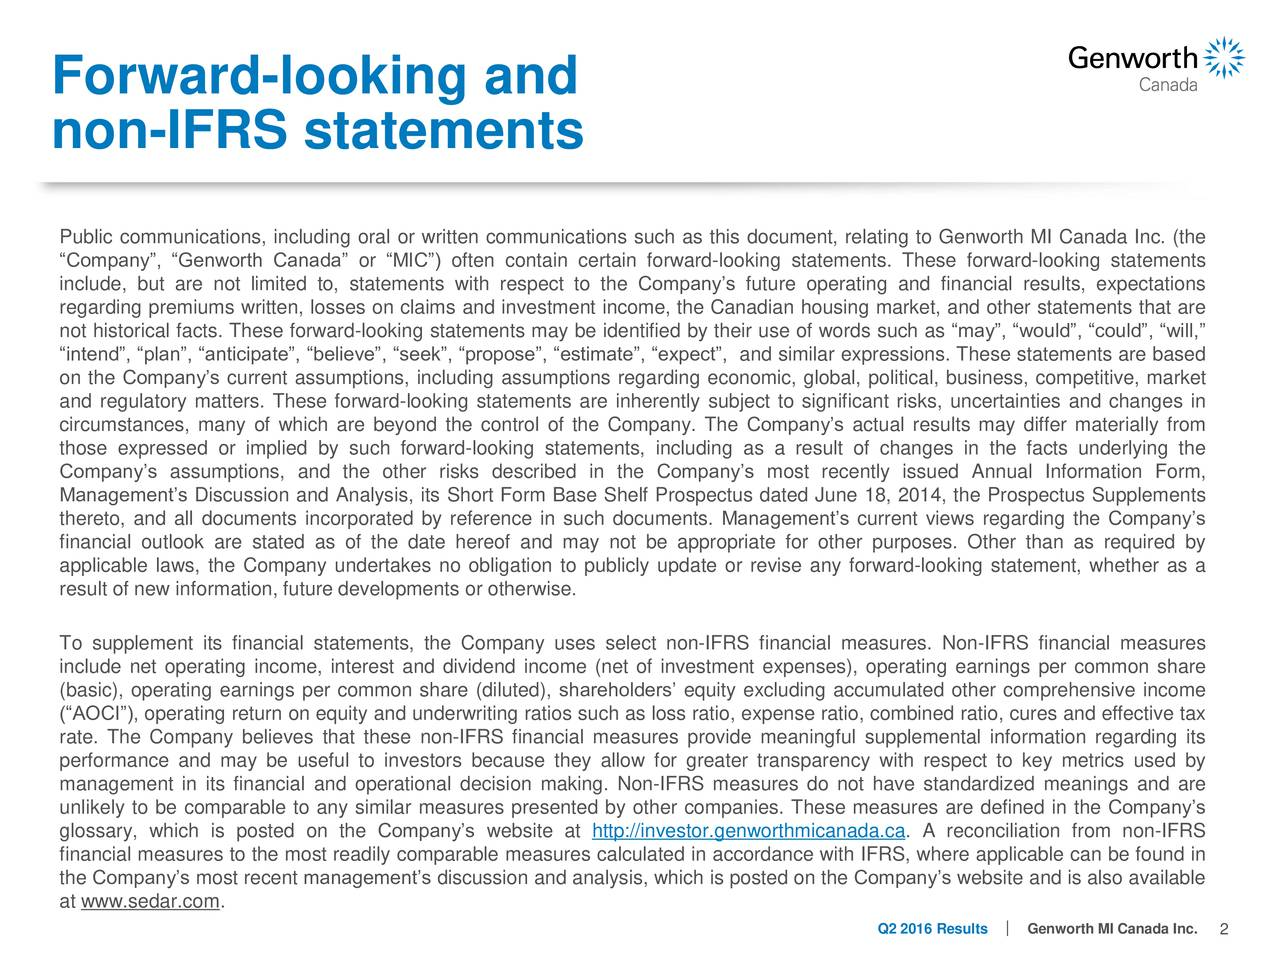 non-IFRS statements Public communications, including oral or written communications such as this document, relating to Genworth MI Canada Inc. (the Company, Genworth Canada or MIC) often contain certain forward-looking statements. These forward-looking statements include, but are not limited to, statements with respect to the Companys future operating and financial results, expectations regarding premiums written, losses on claims and investment income, the Canadian housing market, and other statements that are not historical facts. These forward-looking statements may be identified by their use of words such as may, would, could, will, intend, plan, anticipate, believe, seek, propose, estimate, expect, and similar expressions. These statements are based on the Companys current assumptions, including assumptions regarding economic, global, political, business, competitive, market and regulatory matters. These forward-looking statements are inherently subject to significant risks, uncertainties and changes in circumstances, many of which are beyond the control of the Company. The Companys actual results may differ materially from those expressed or implied by such forward-looking statements, including as a result of changes in the facts underlying the Companys assumptions, and the other risks described in the Companys most recently issued Annual Information Form, Managements Discussion and Analysis, its Short Form Base Shelf Prospectus dated June 18, 2014, the Prospectus Supplements thereto, and all documents incorporated by reference in such documents. Managements current views regarding the Companys financial outlook are stated as of the date hereof and may not be appropriate for other purposes. Other than as required by applicable laws, the Company undertakes no obligation to publicly update or revise any forward-looking statement, whether as a result of new information, future developments or otherwise. To supplement its financial statements, the Company uses sel